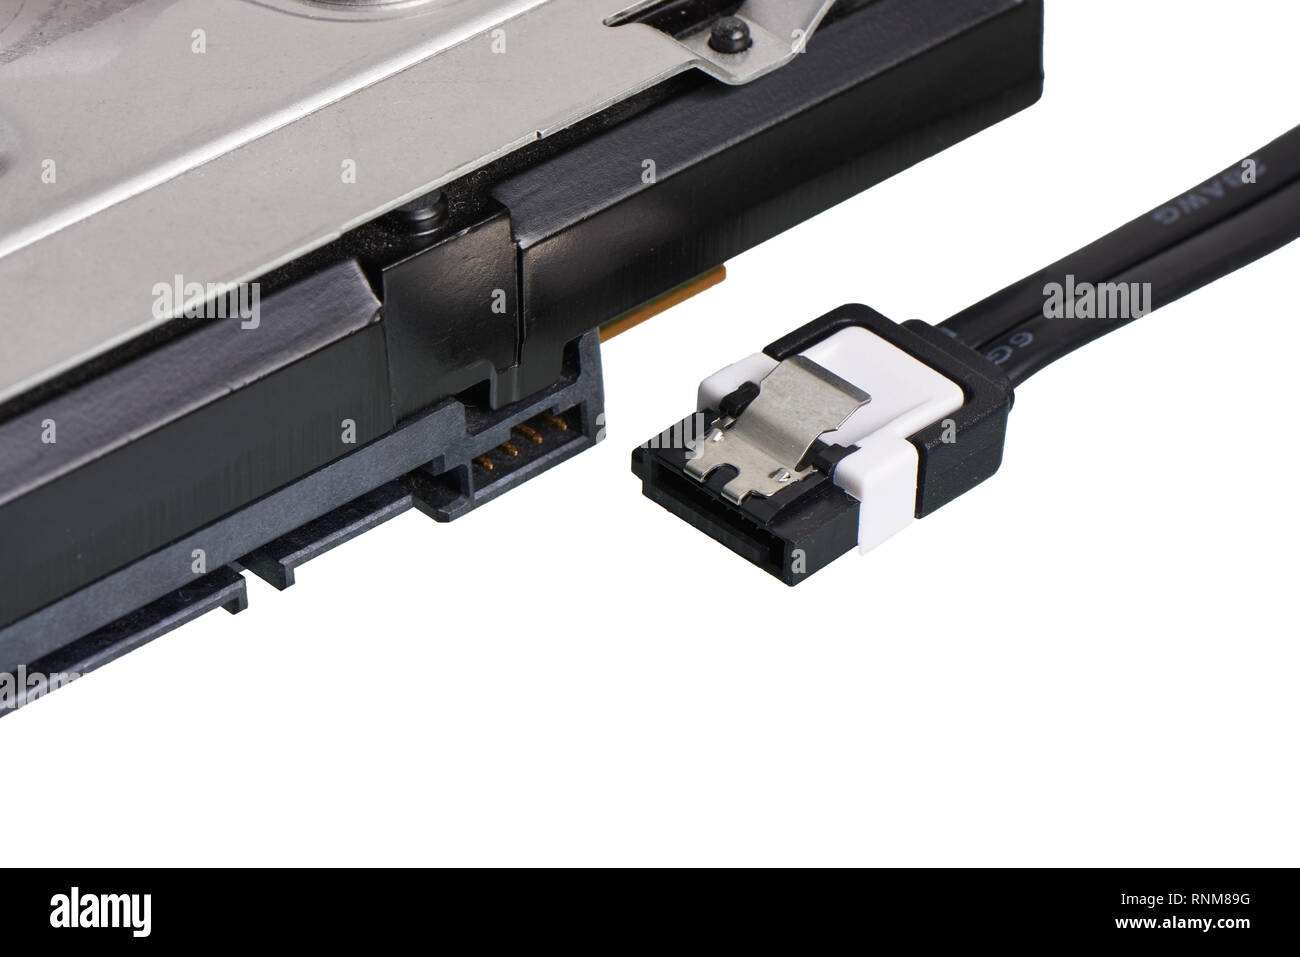 close-up of SATA (Serial AT Attachment, Serial ATA) terminal, computer bus interface to connect mass storage devices - Stock Image